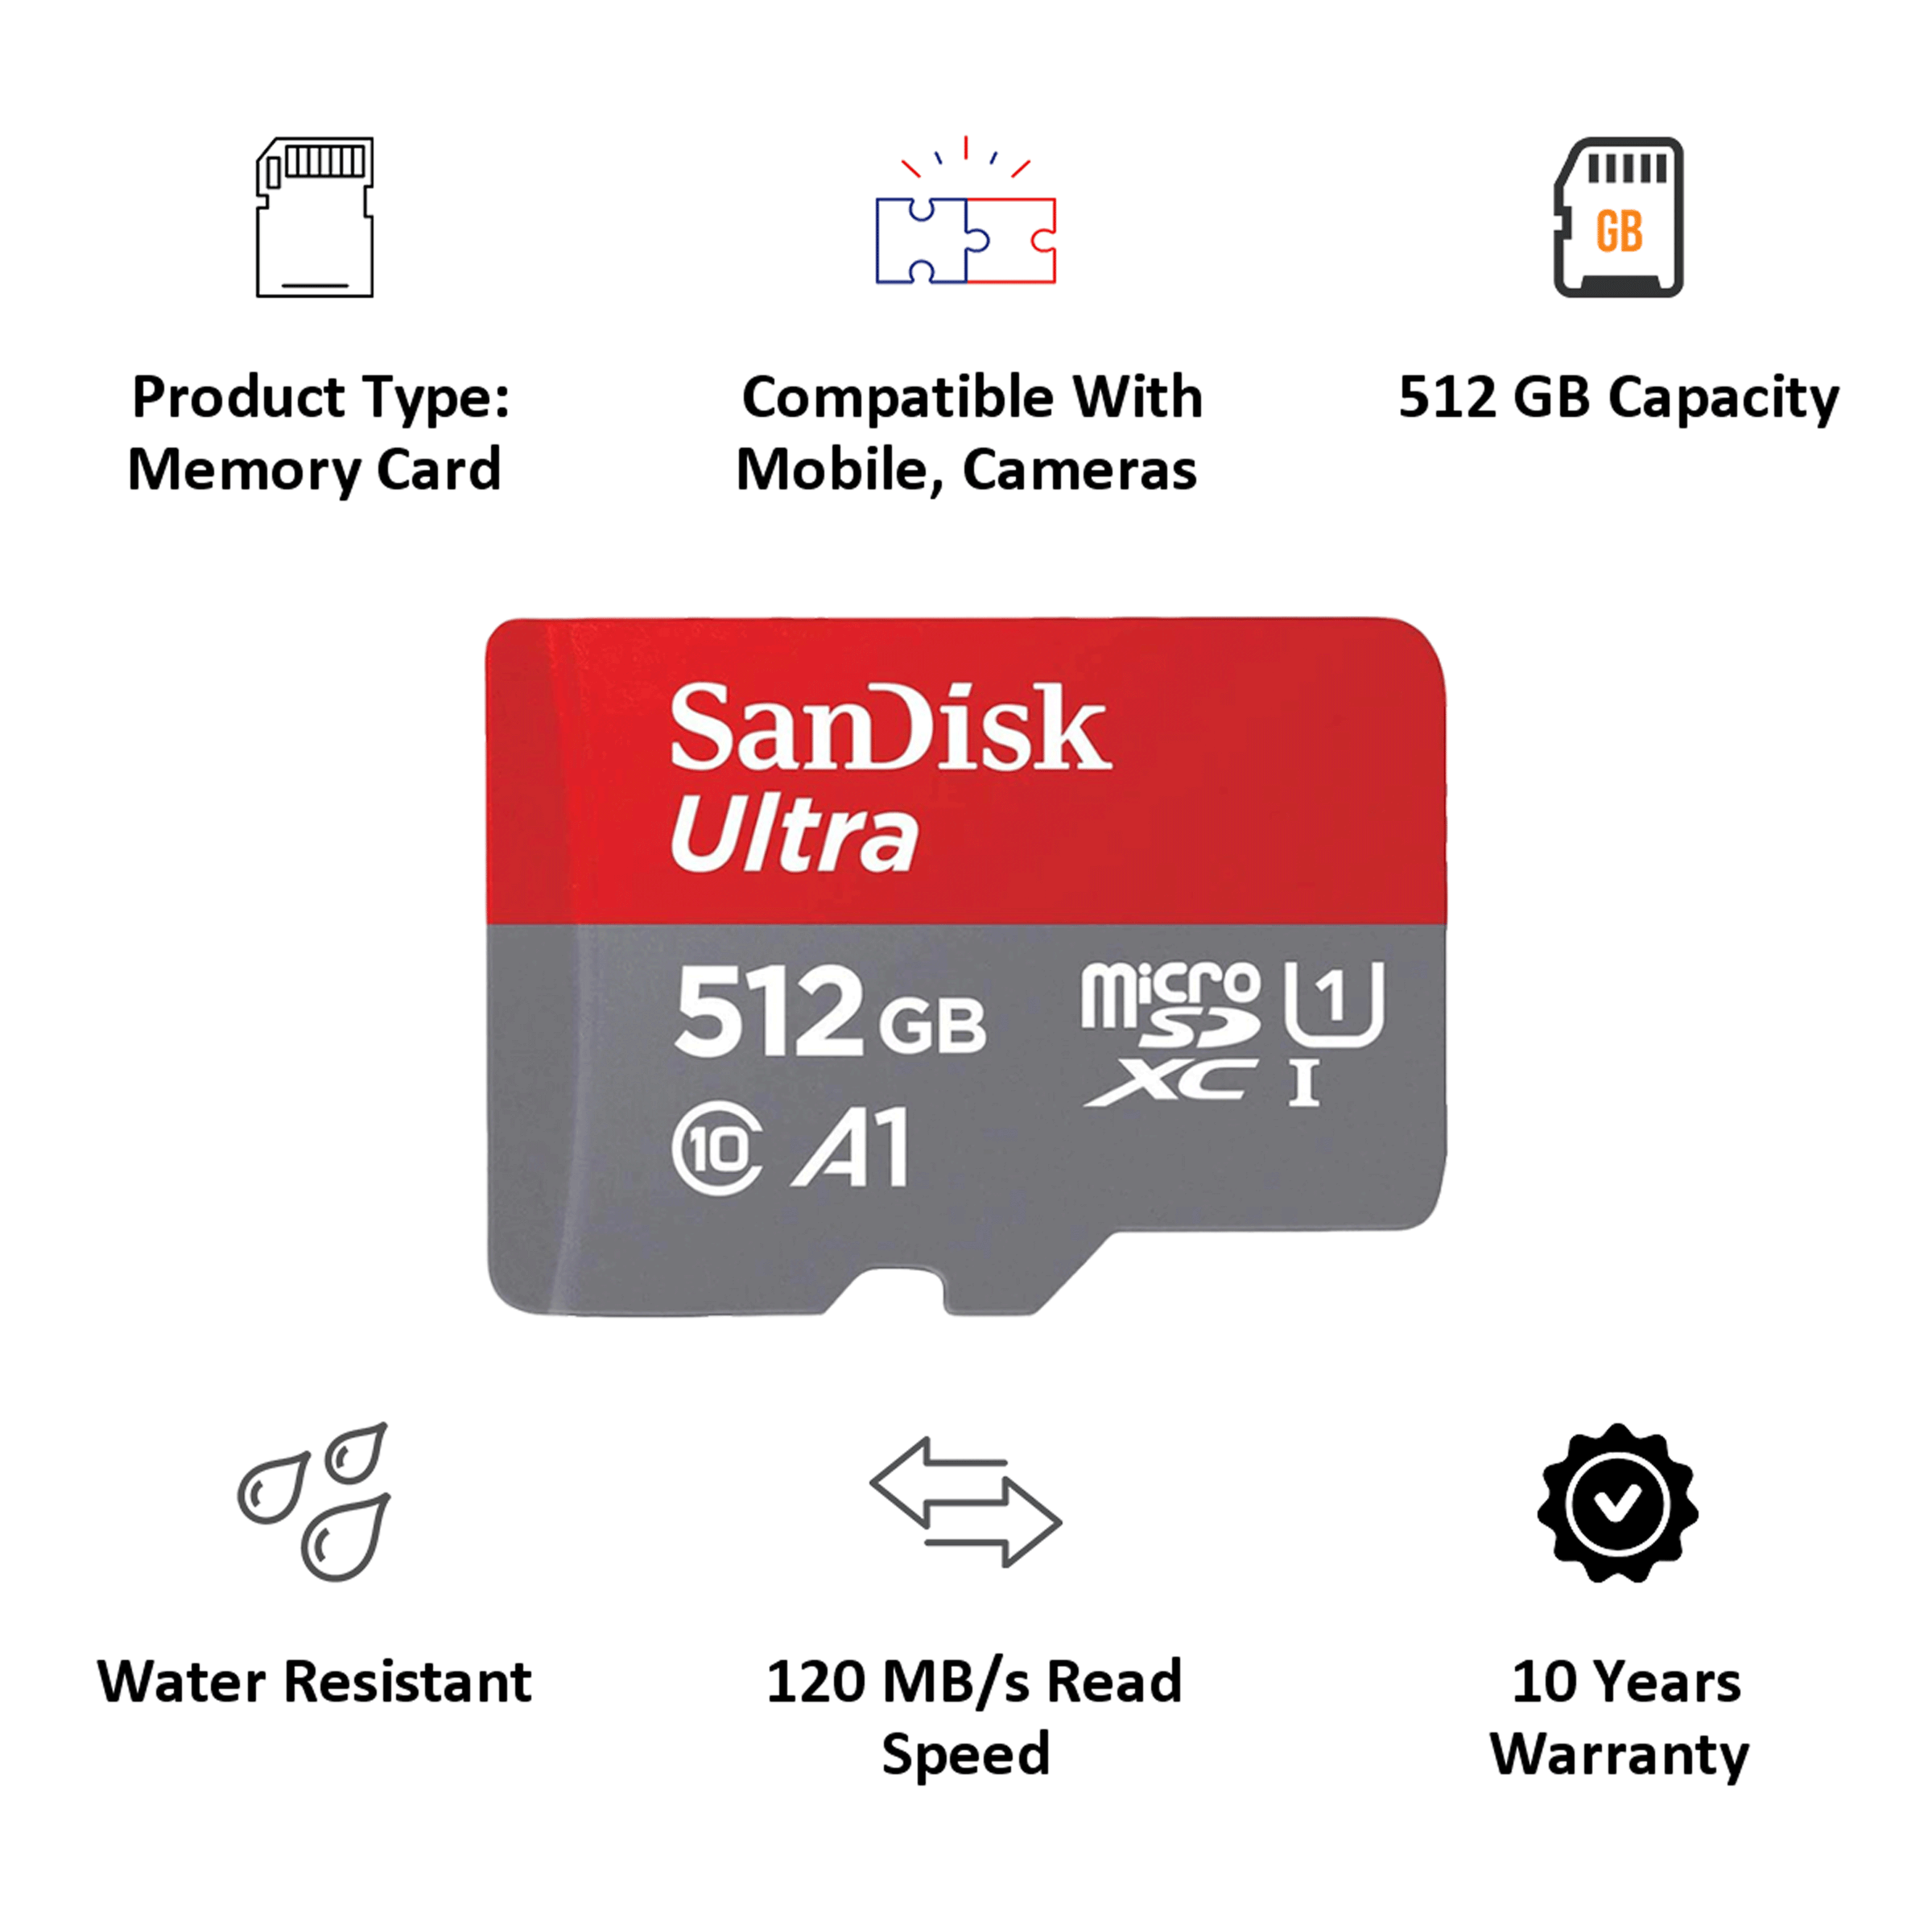 SanDisk Ultra 512GB Class 10 Micro SDXC Memory Card (120 Mbps Read Speed, SDSQUA4-512G-GN6MN, Red)_3